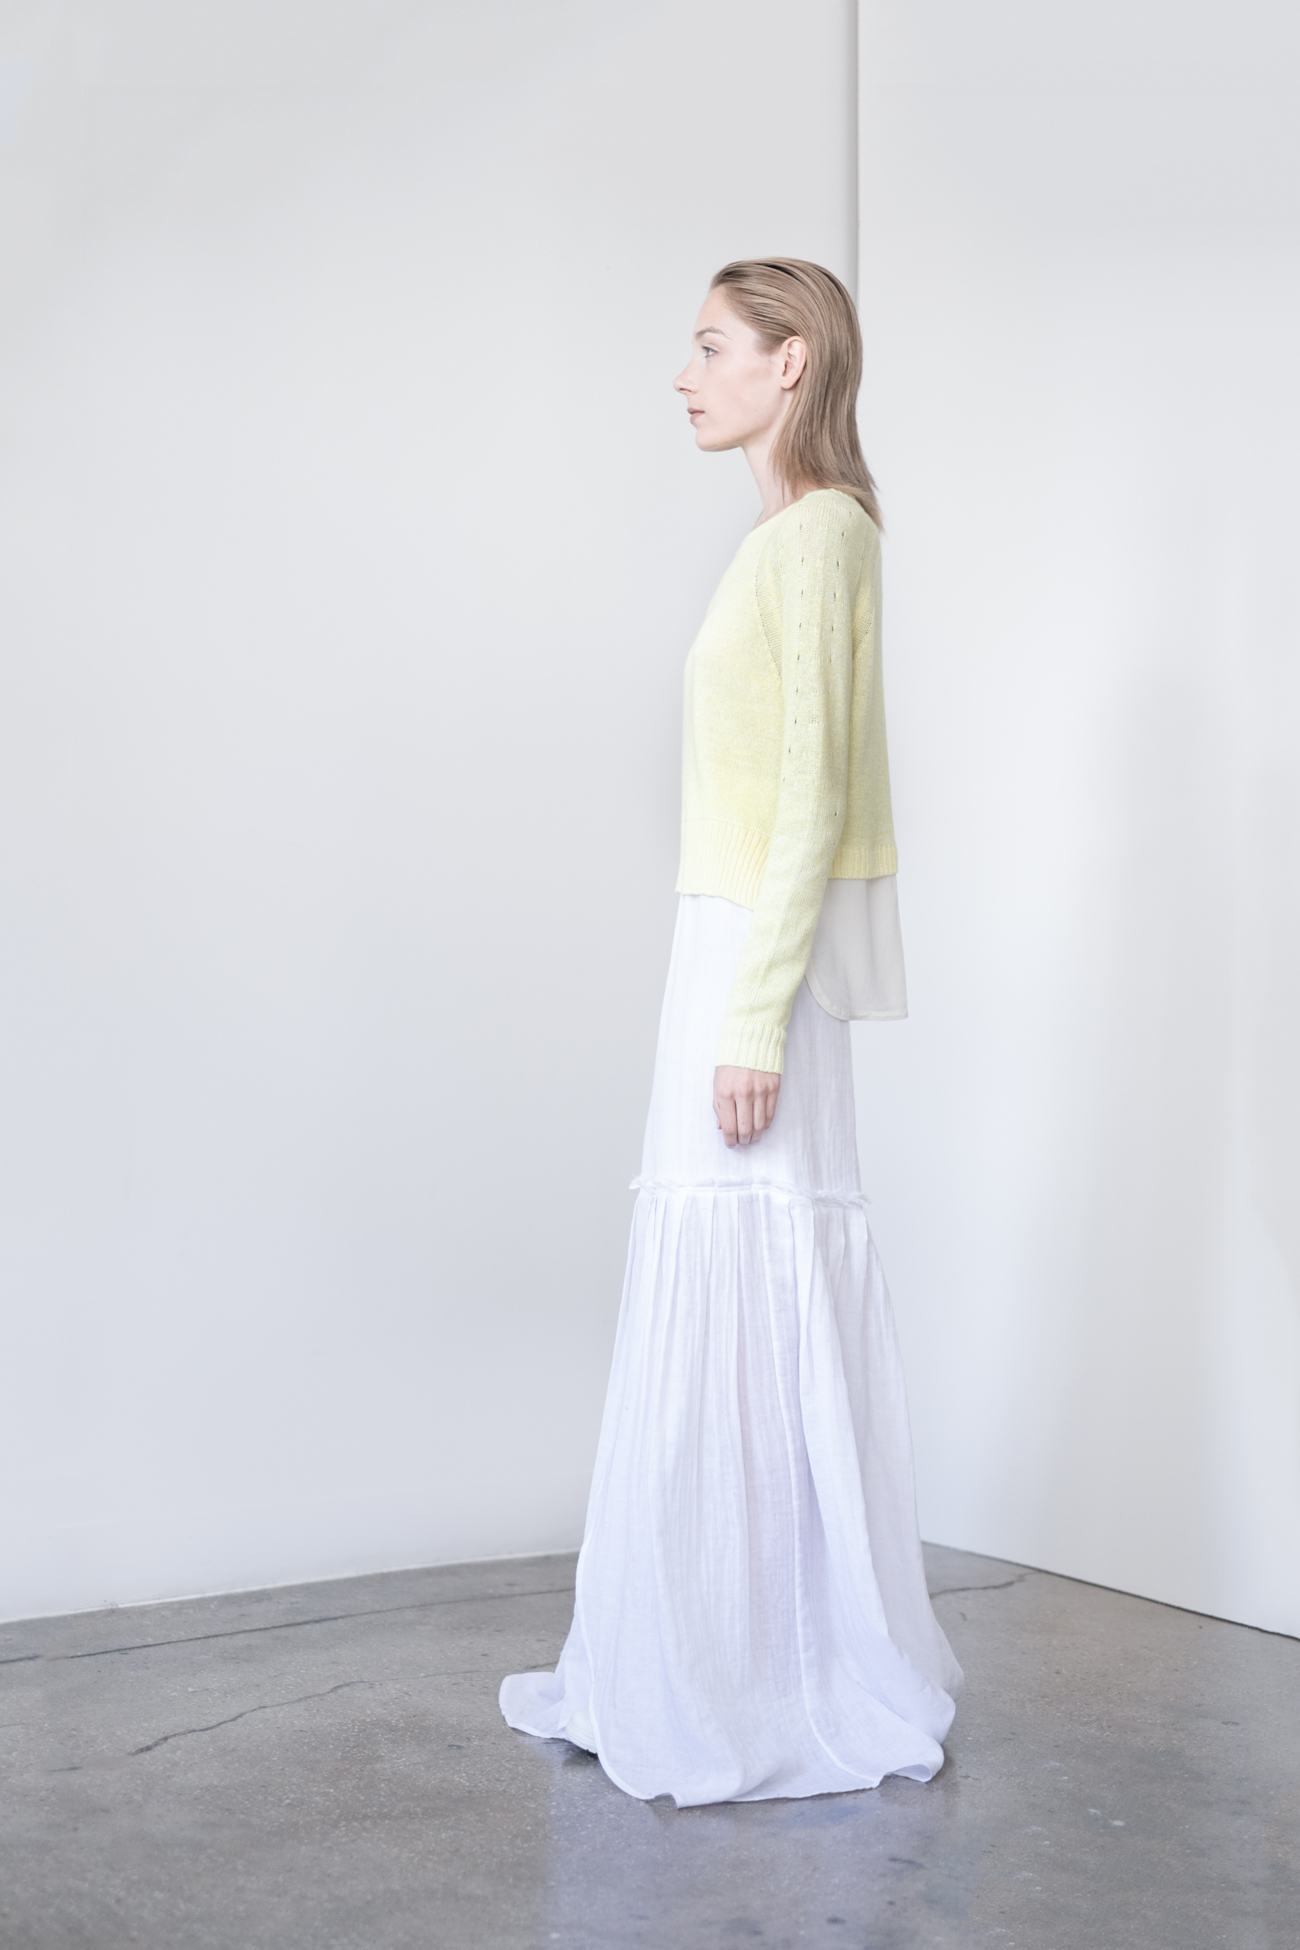 "LOOK 15   TOP:   2260  / Canary   -           0   0   2015-09-15T00:56:00Z   1   8   48   Rick Owens   1   1   55   14.0                       Normal   0             false   false   false     EN-US   JA   X-NONE                                                                                                                                                                                                                                                                                                                                                                               /* Style Definitions */ table.MsoNormalTable 	{mso-style-name:""Table Normal""; 	mso-tstyle-rowband-size:0; 	mso-tstyle-colband-size:0; 	mso-style-noshow:yes; 	mso-style-priority:99; 	mso-style-parent:""""; 	mso-padding-alt:0in 5.4pt 0in 5.4pt; 	mso-para-margin:0in; 	mso-para-margin-bottom:.0001pt; 	mso-pagination:widow-orphan; 	font-size:12.0pt; 	font-family:Cambria; 	mso-ascii-font-family:Cambria; 	mso-ascii-theme-font:minor-latin; 	mso-hansi-font-family:Cambria; 	mso-hansi-theme-font:minor-latin;}       Crew neck pullover with Silk crepe de chine shirt tail.  WS: 129    BOTTOM:   2291  / Blanc -   Long maxi skirt also can be worn as strapless dress, in crinkle woven 2-layer cotton gauze."